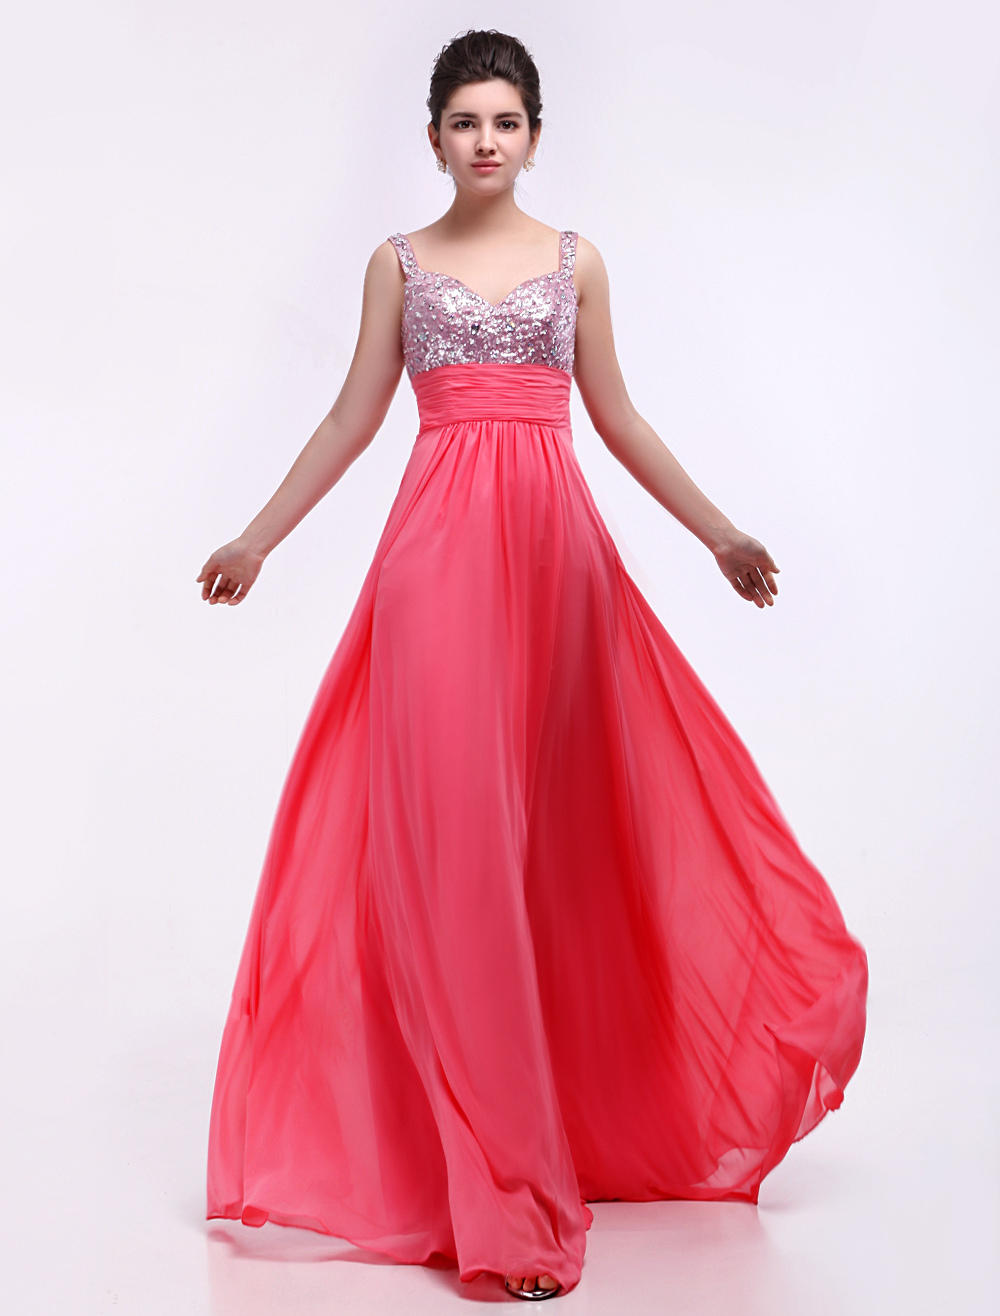 Candy Pink Sequnied Chiffon Prom Dress With Sweetheart Neck (Wedding Cheap Party Dress) photo